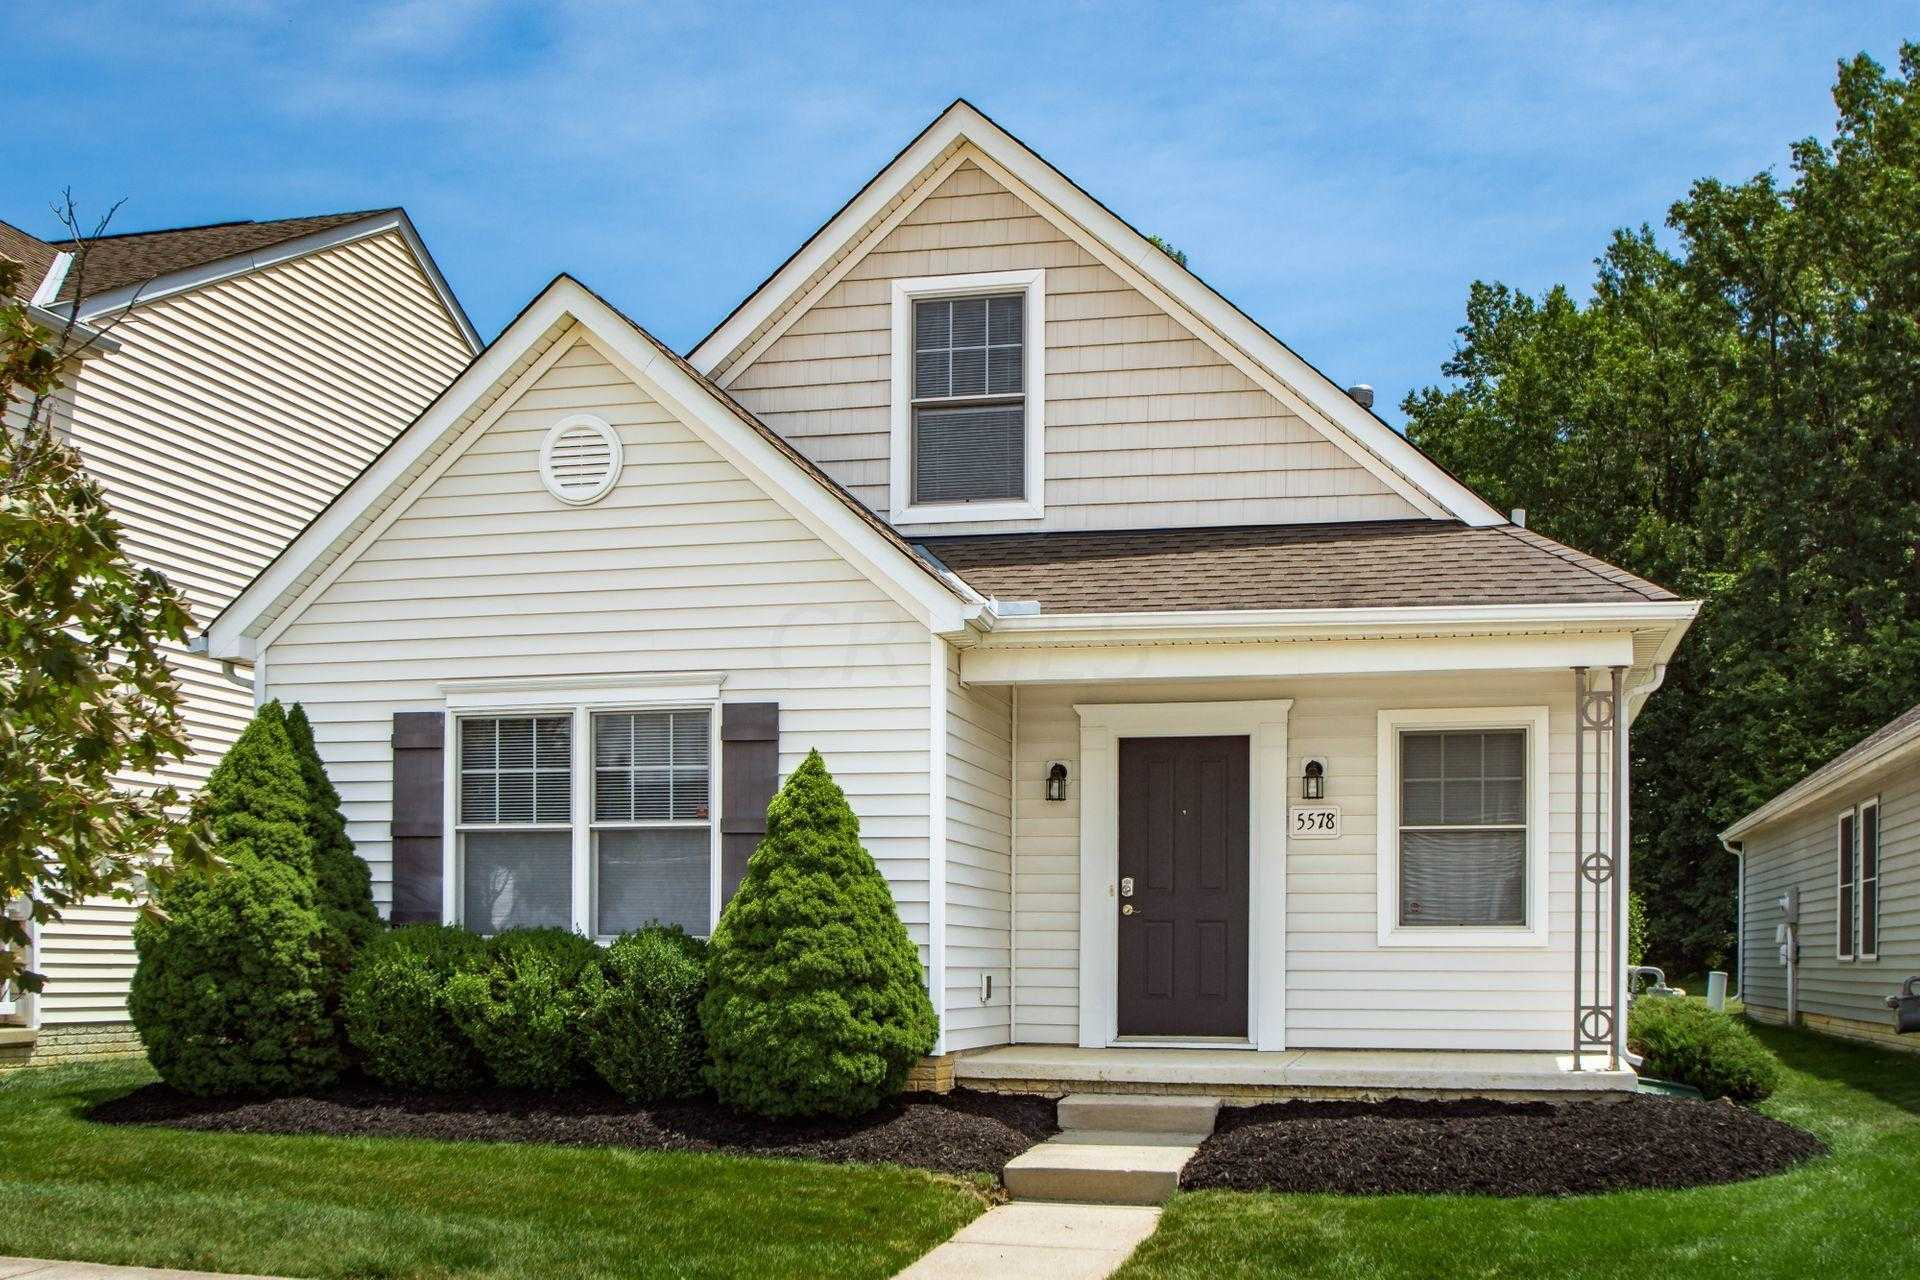 5578 Limerock Drive Westerville,OH 43081 221023114